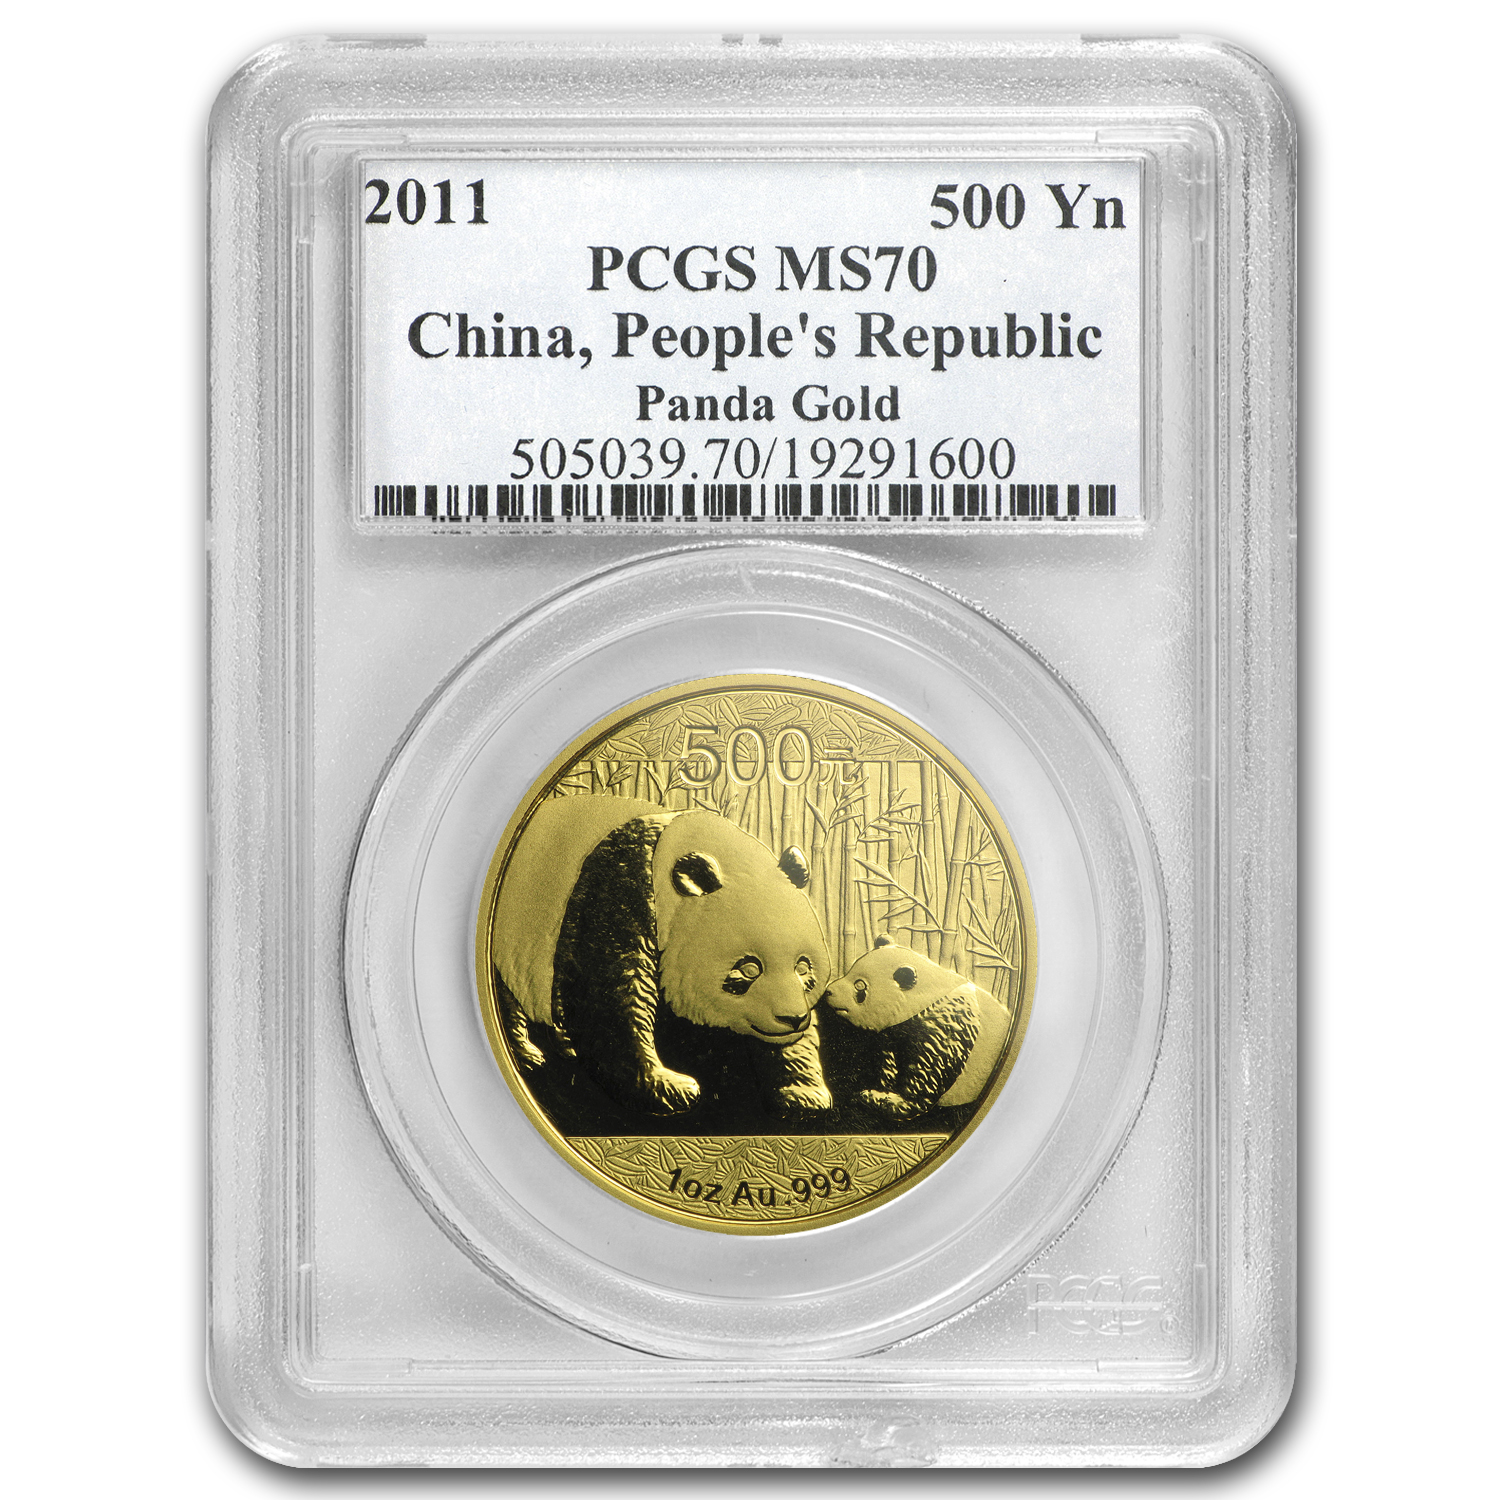 2011 1 oz Gold Chinese Panda MS-70 PCGS